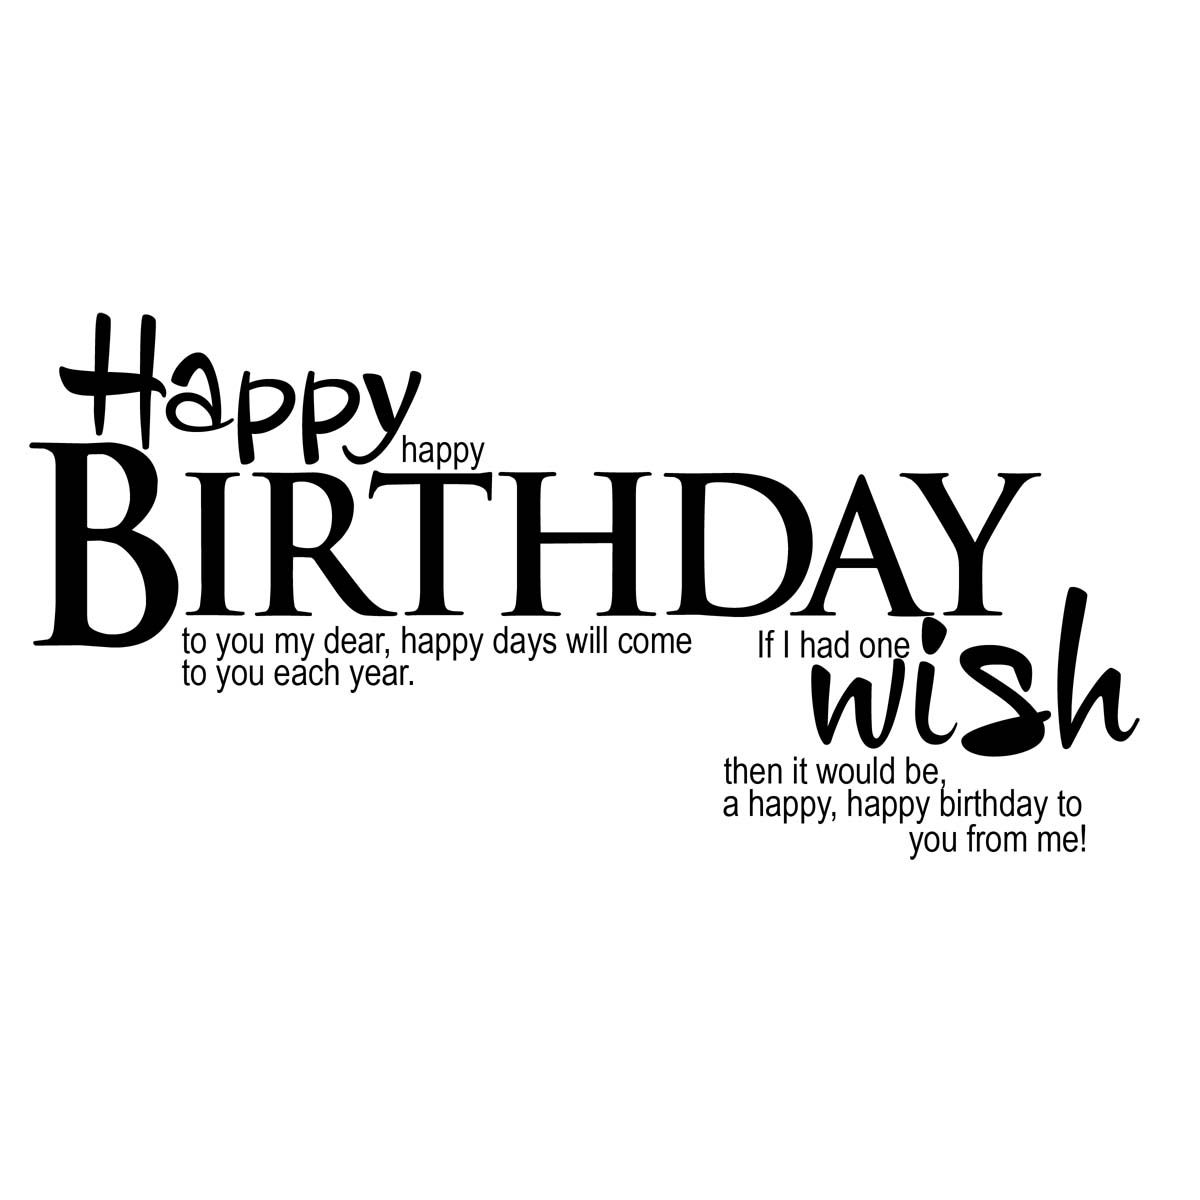 Funny Happy Birthday Quotes Studentschillout Funny Happy Birthday Wishes Birthday Wishes Funny Birthday Quotes Funny